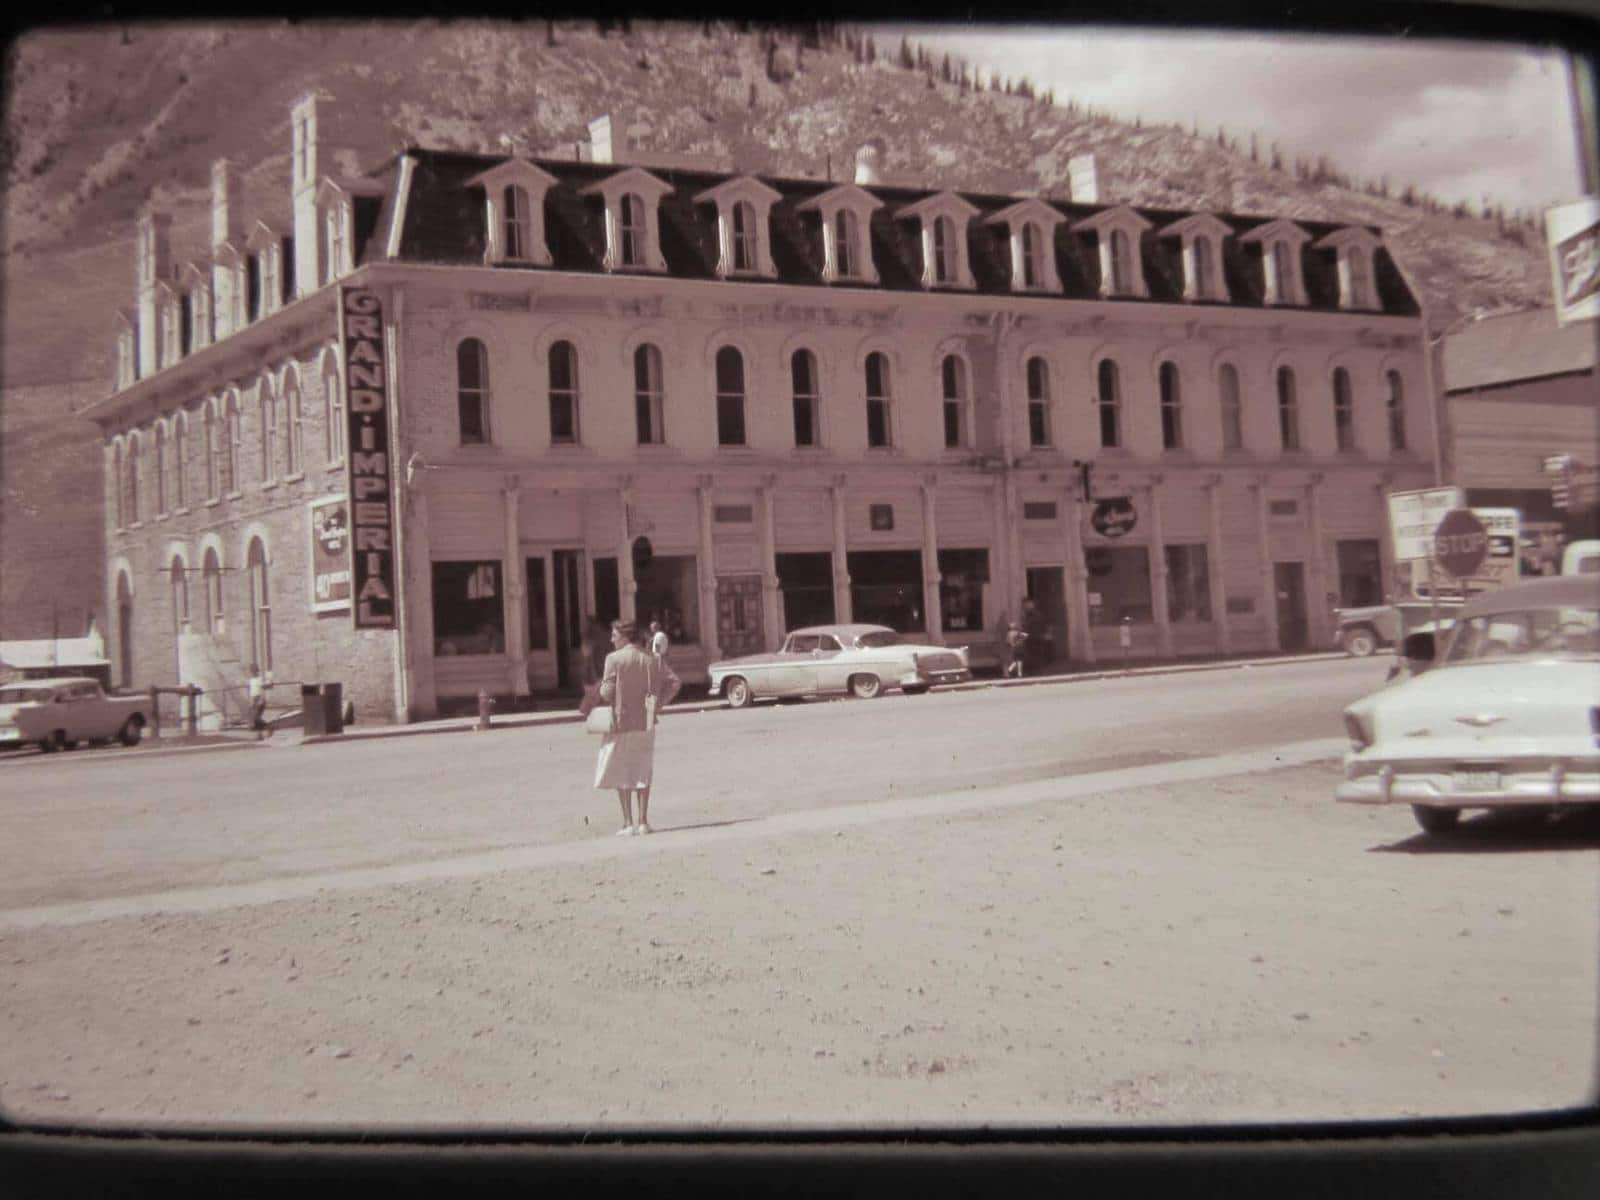 Image of the Grand Imperial Hotel in 1959 in Silverton, CO